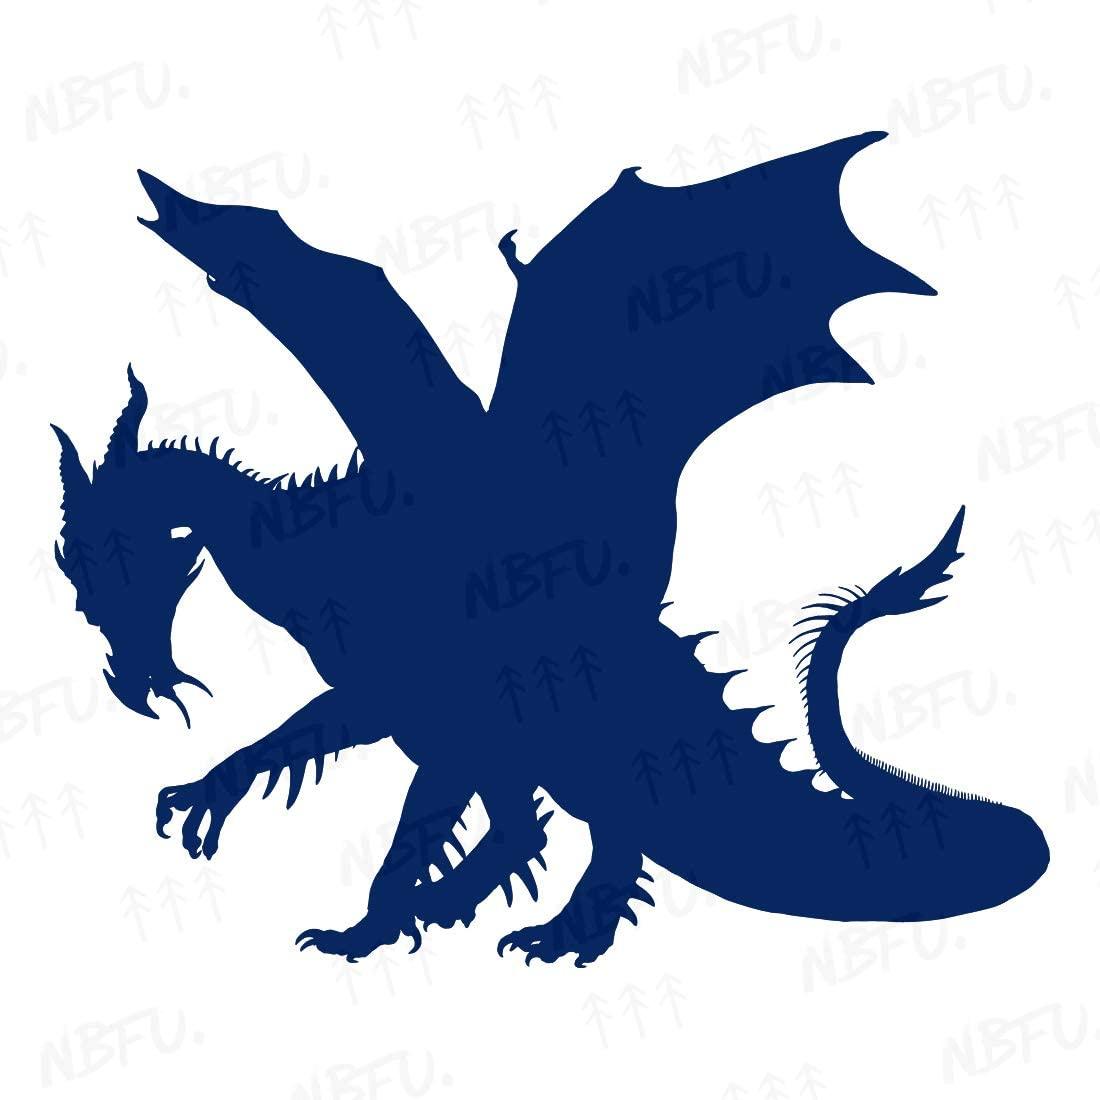 NBFU Decals Dragon Silhouettes 6 (Navy Blue) (Set of 2) Premium Waterproof Vinyl Decal Stickers for Laptop Phone Accessory Helmet Car Window Bumper Mug Tuber Cup Door Wall Decoration